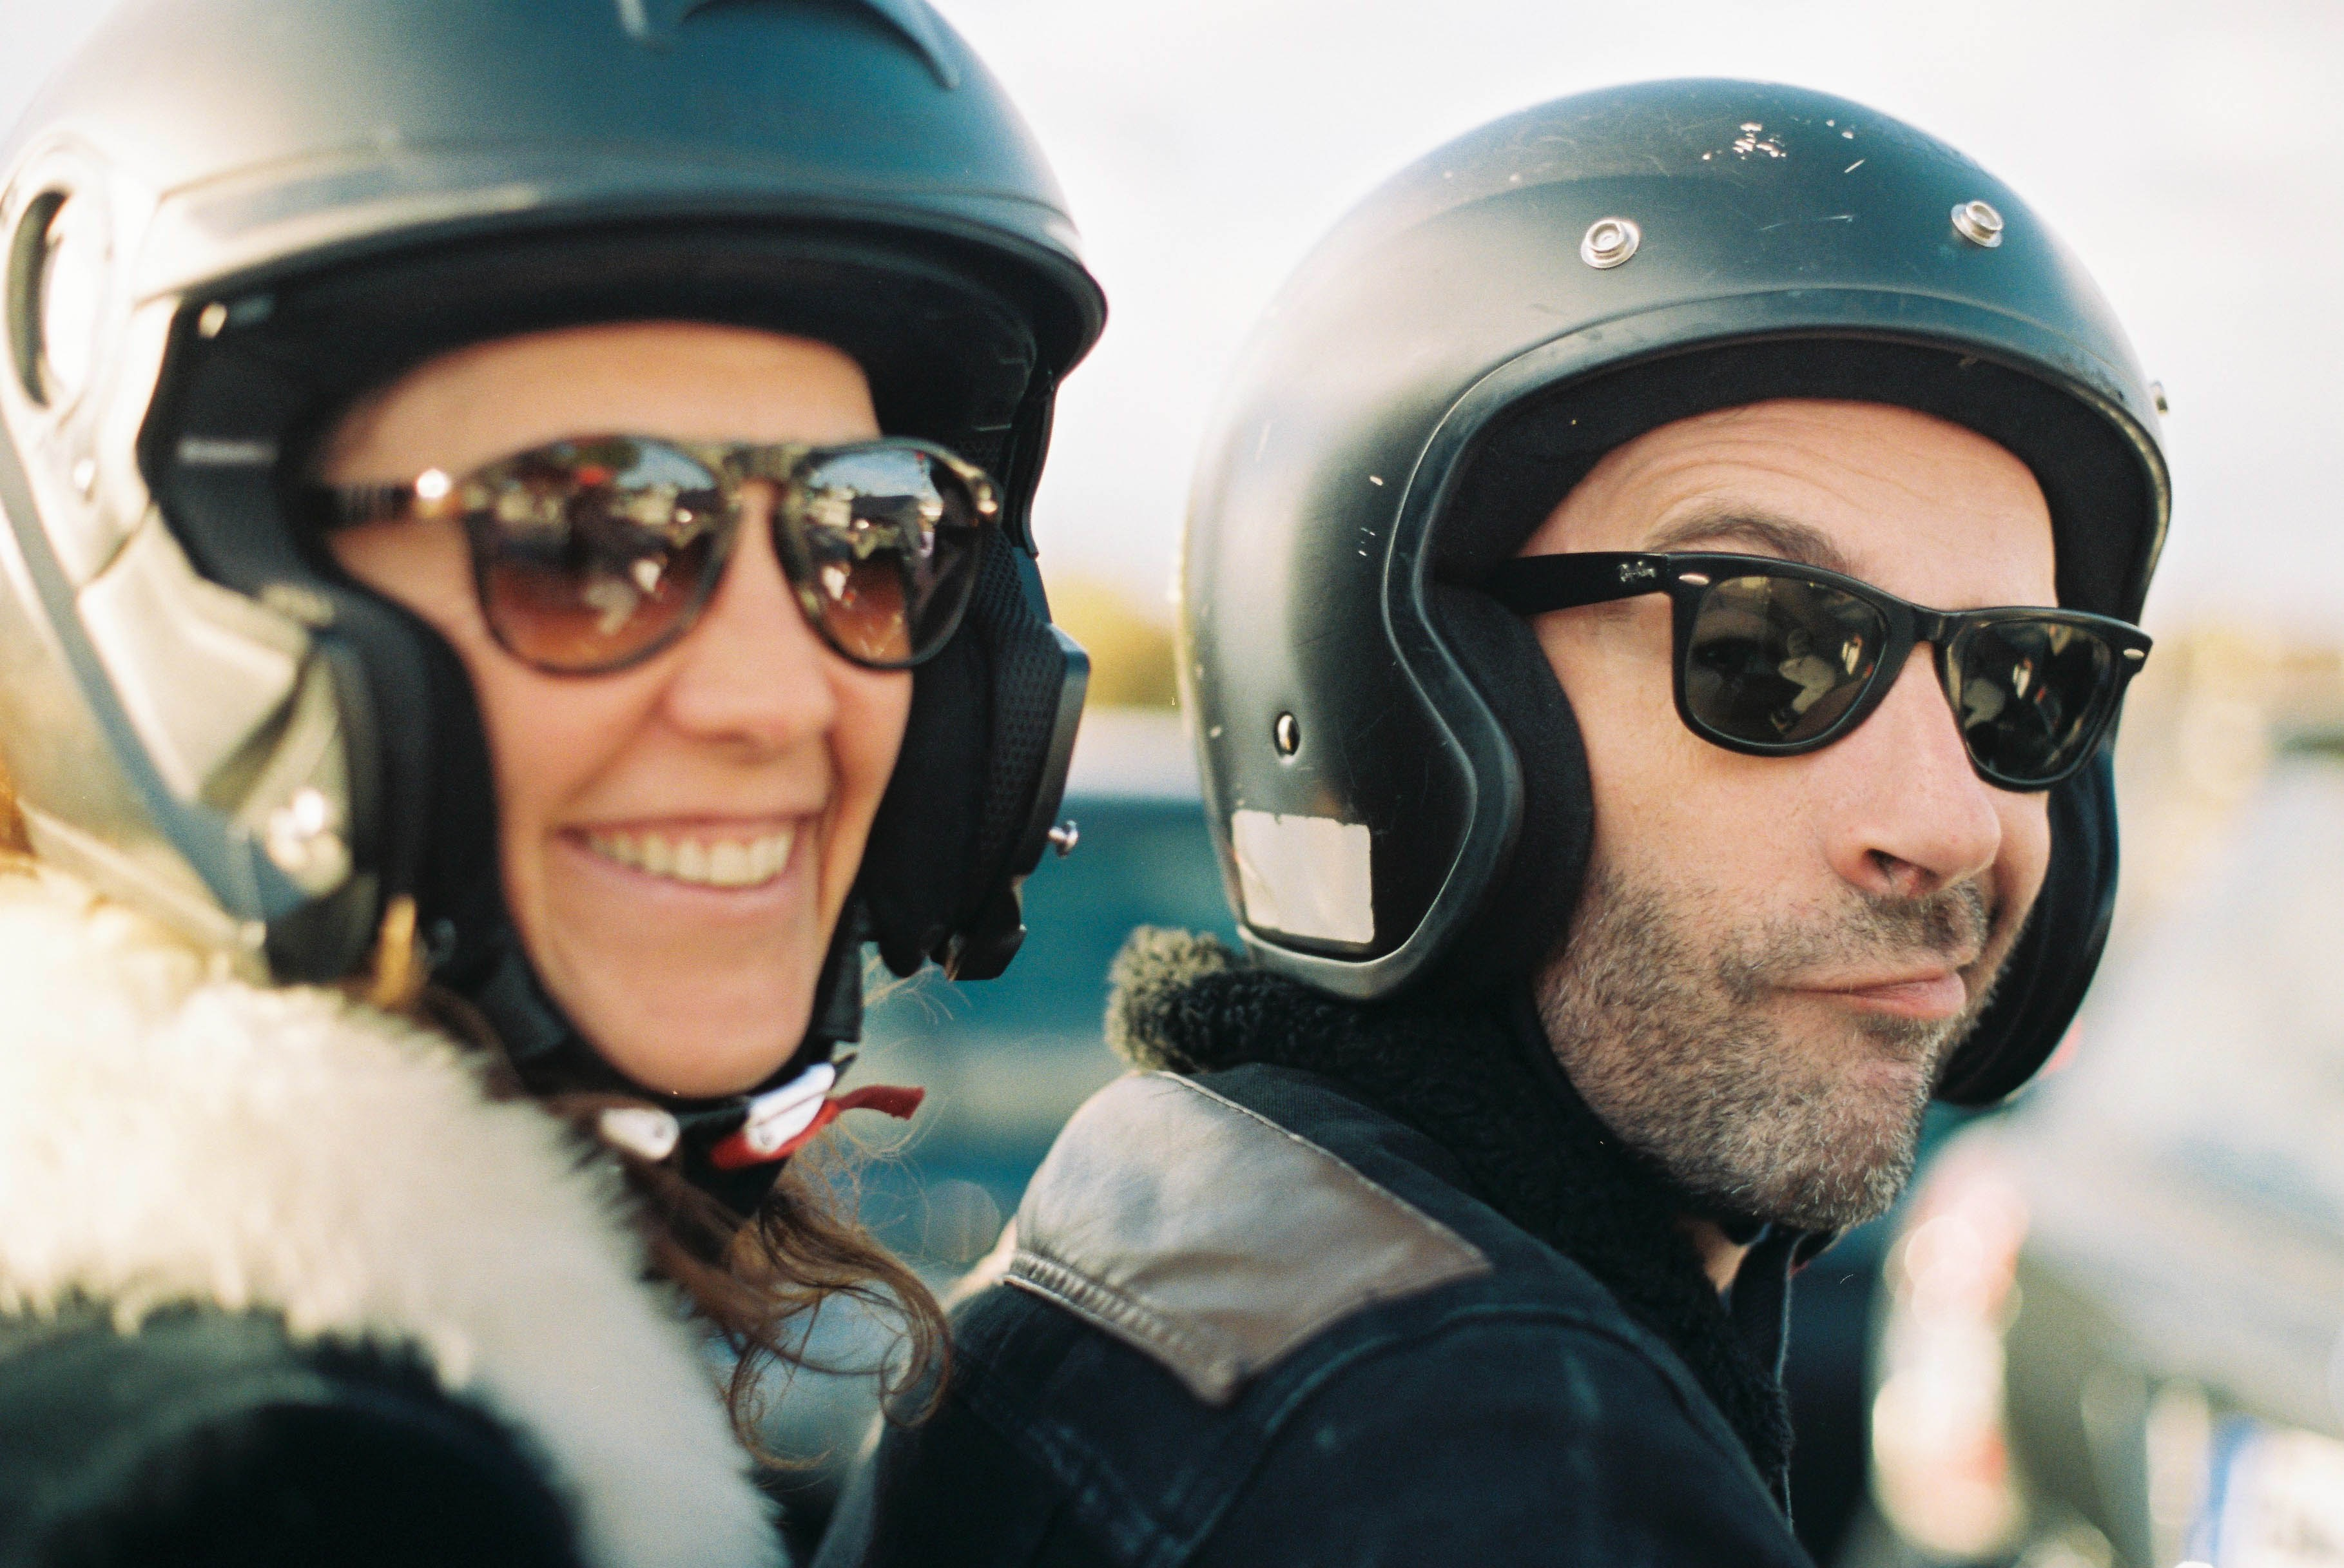 man and woman riding motorcycle